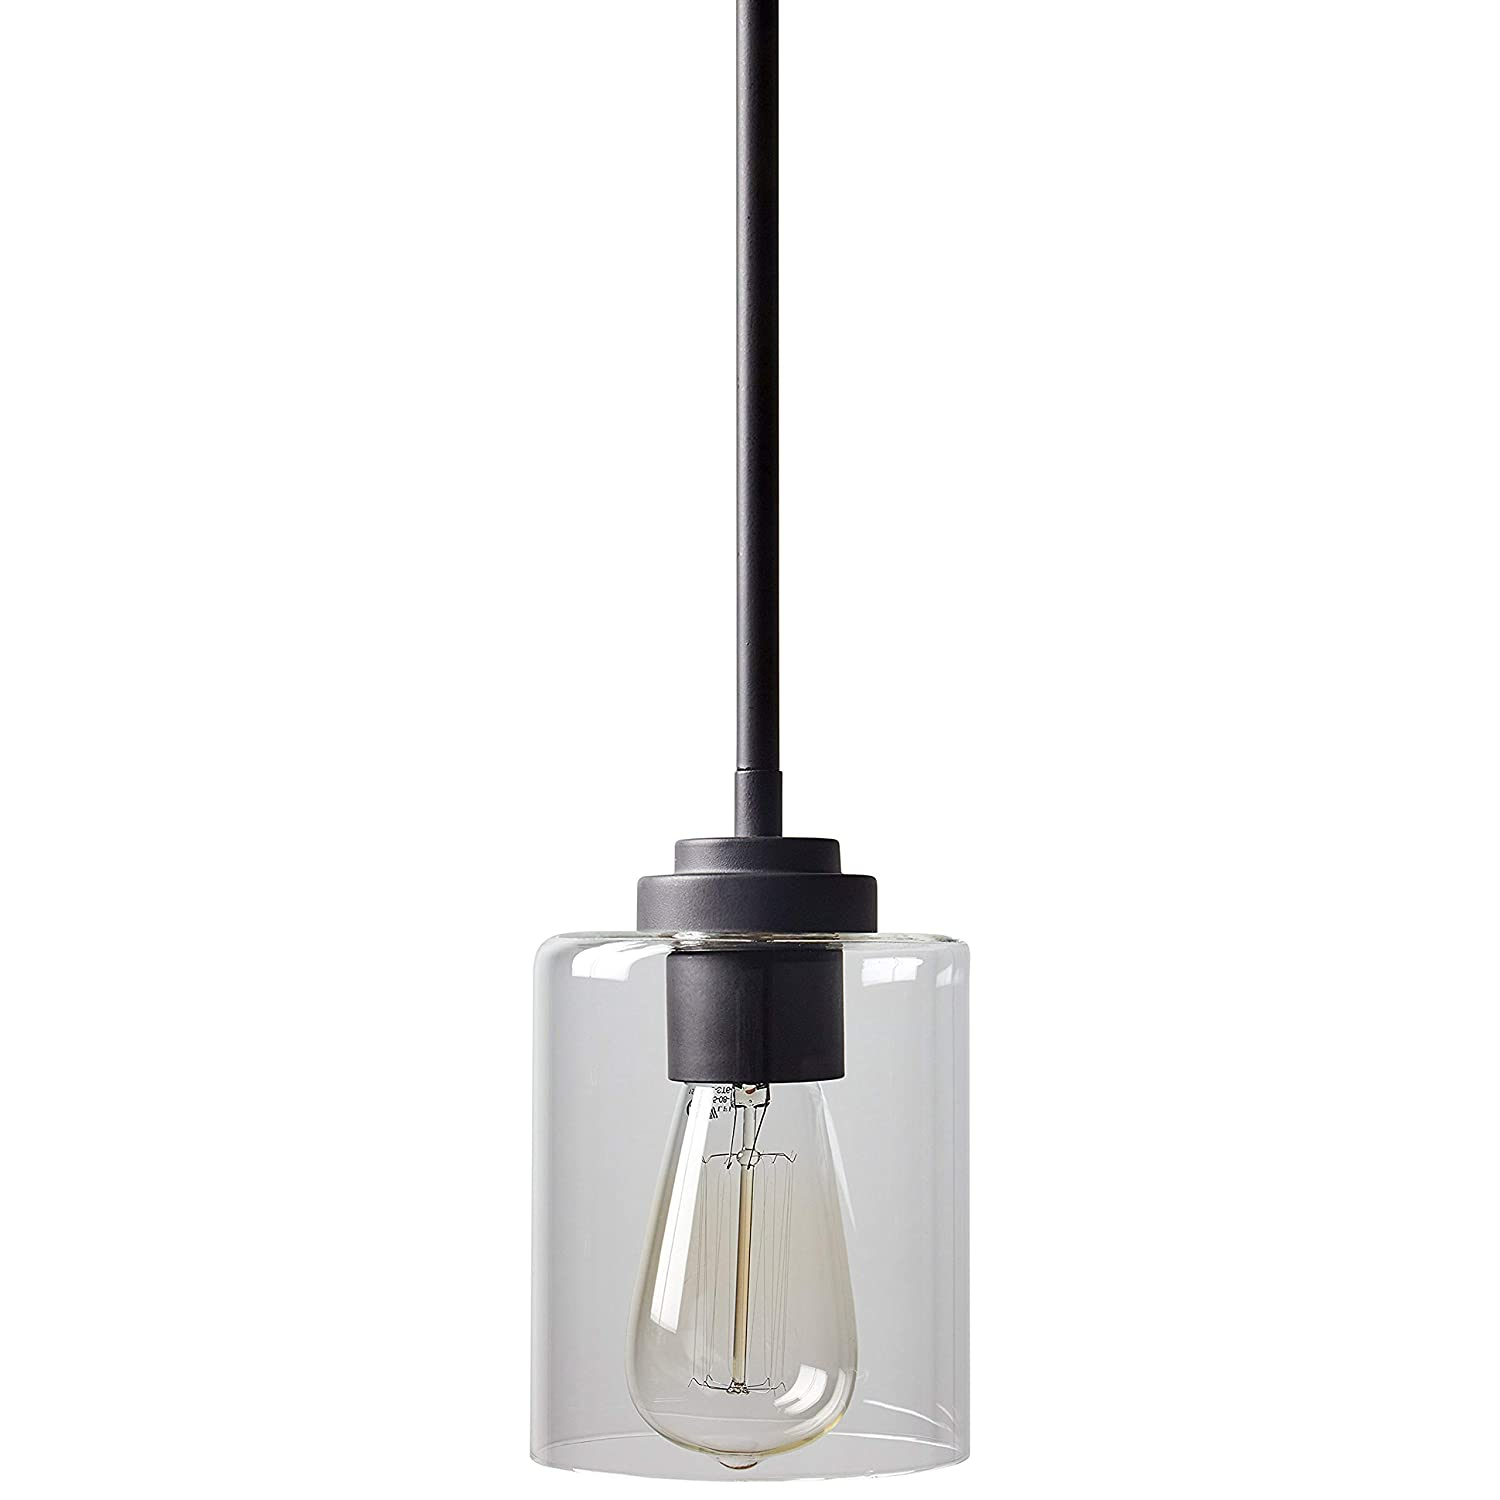 "Stone & Beam Modern Cylinder Pendant Light With Bulb, 10""-58""H, Oil-Rubbed Bronze"